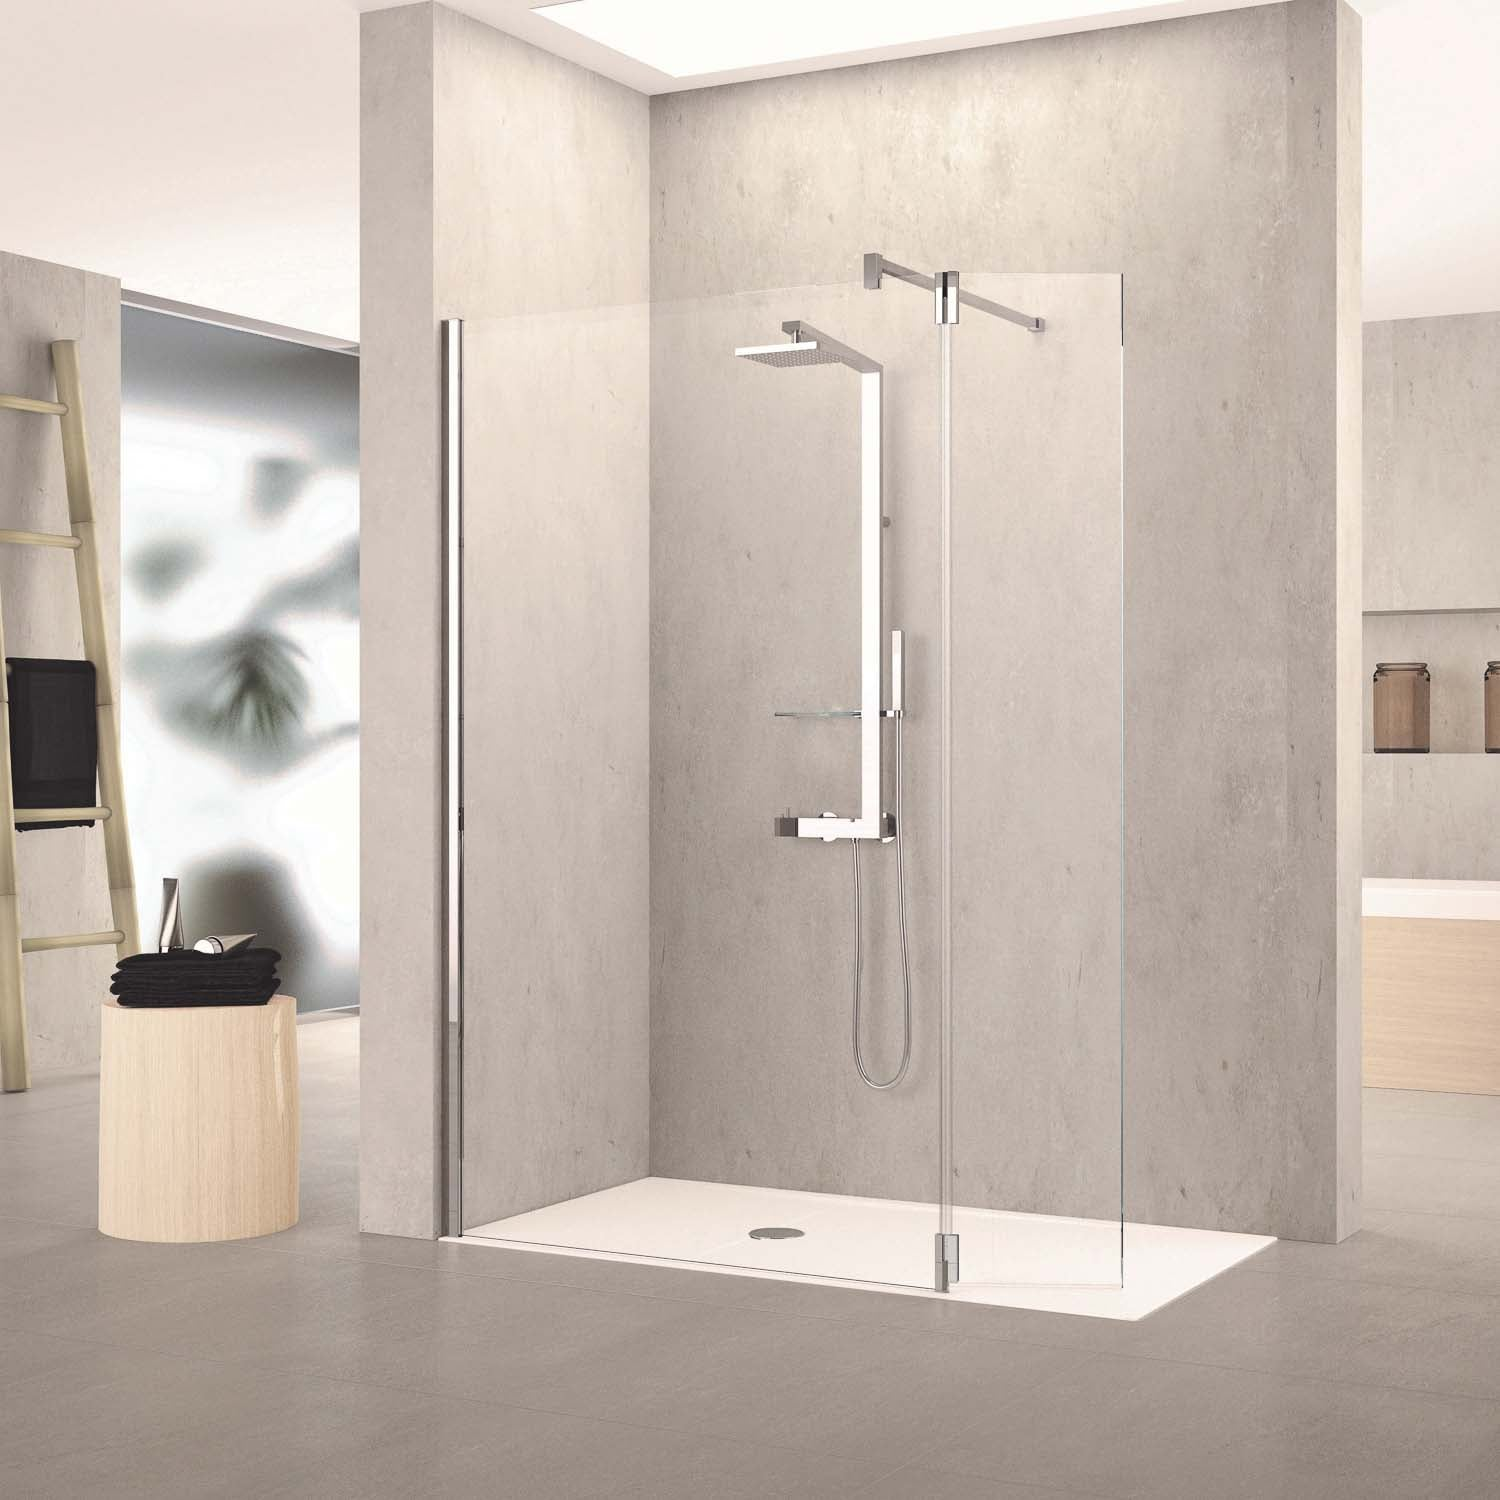 720-750mm Ergo Wet Room Screen Clear Glass with a chrome finish lifestyle image